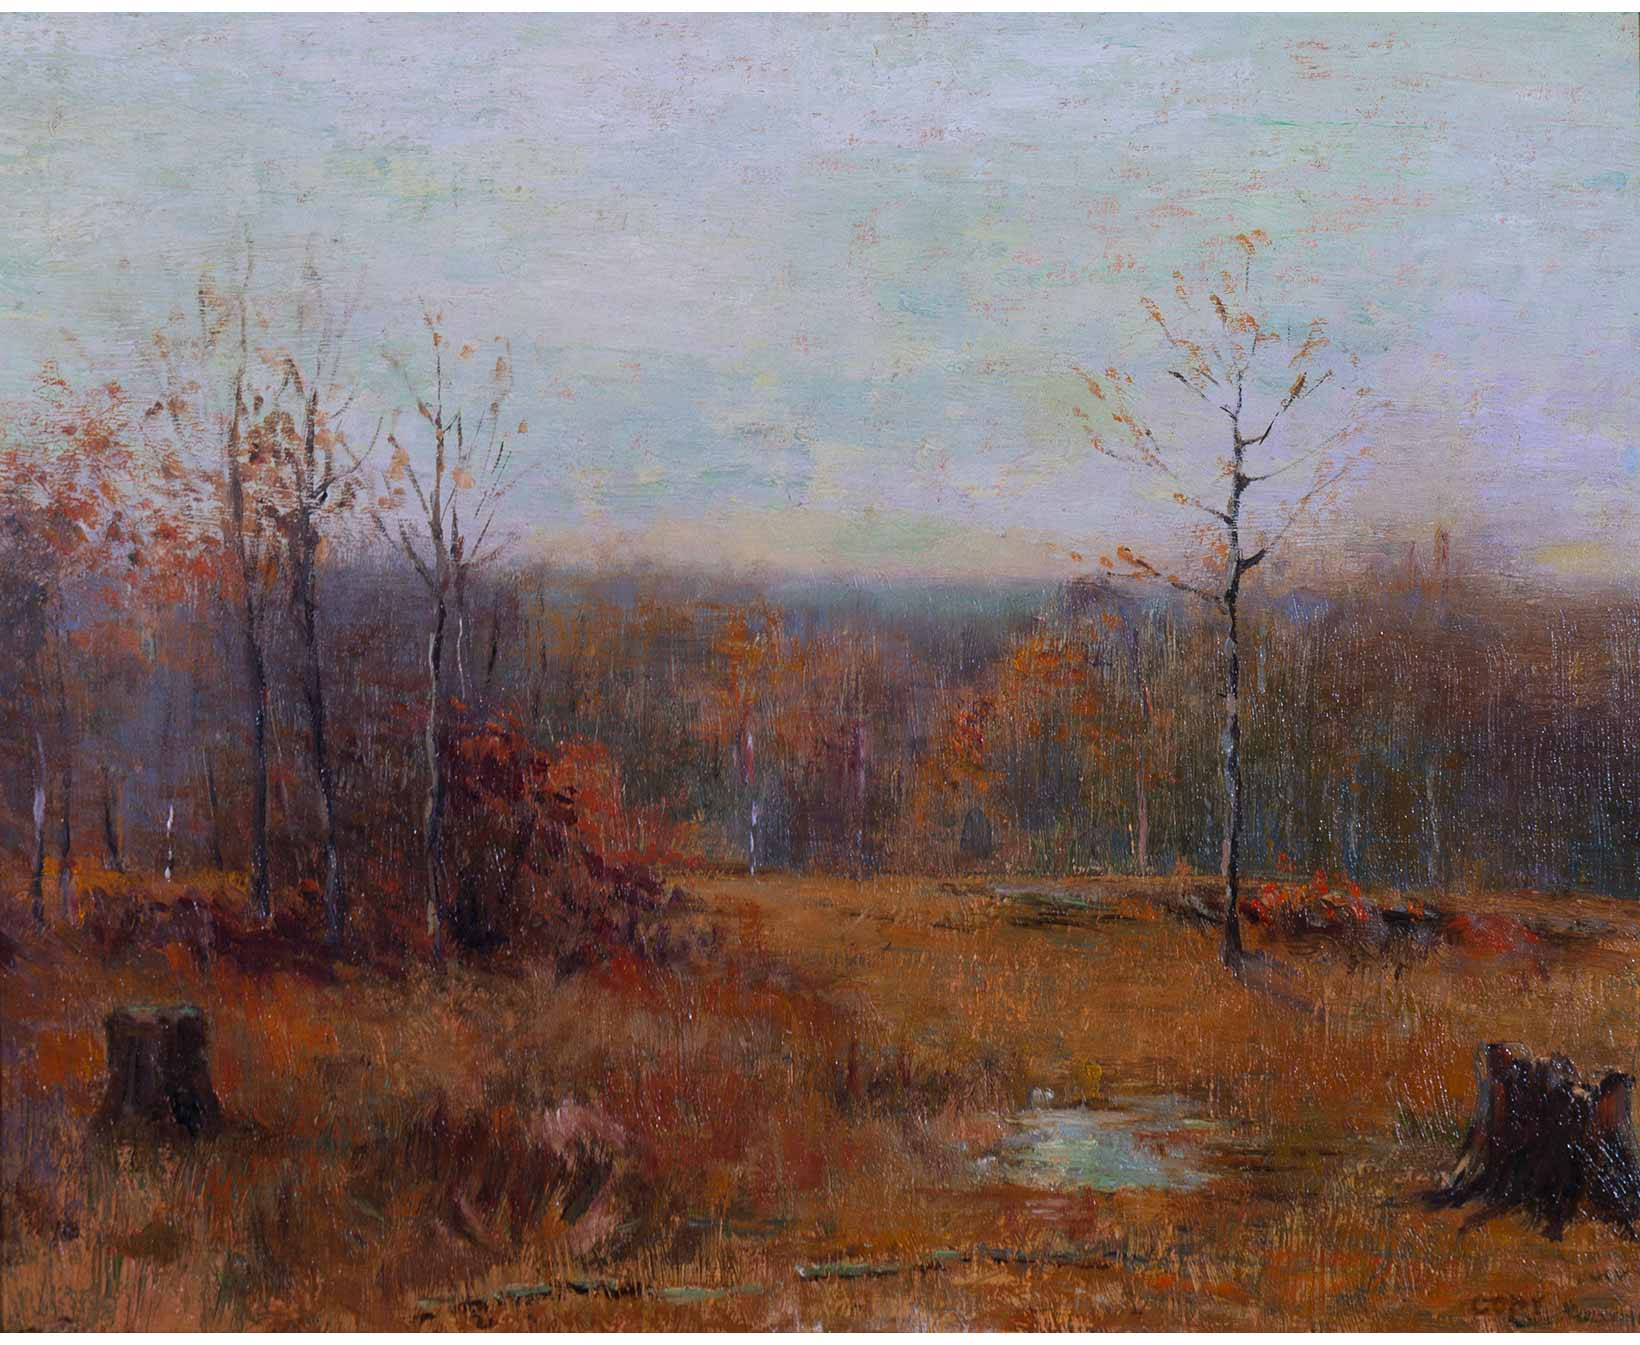 artwork of former first lady ellen axson wilson in old lyme ct ellen axson wilson landscape stumps and pond 1911 1912 oil on canvas 27 x 23 ½ woodrow wilson house a national trust historic site washington